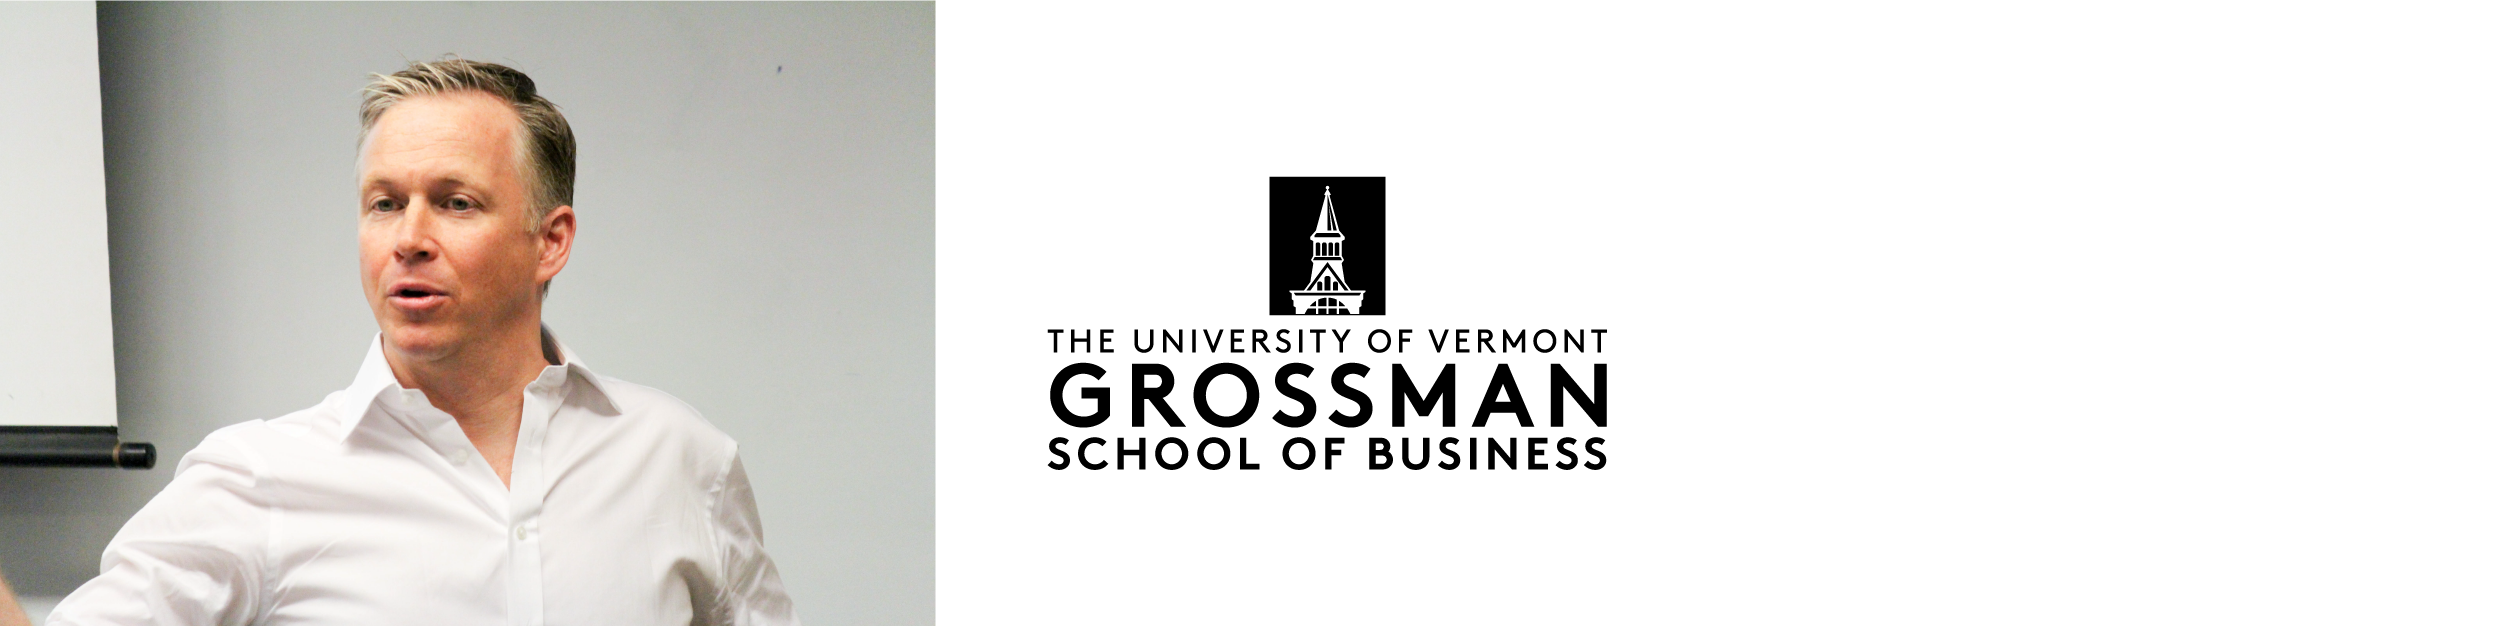 uvm, grossman school of business, brian kelly, bitcoin